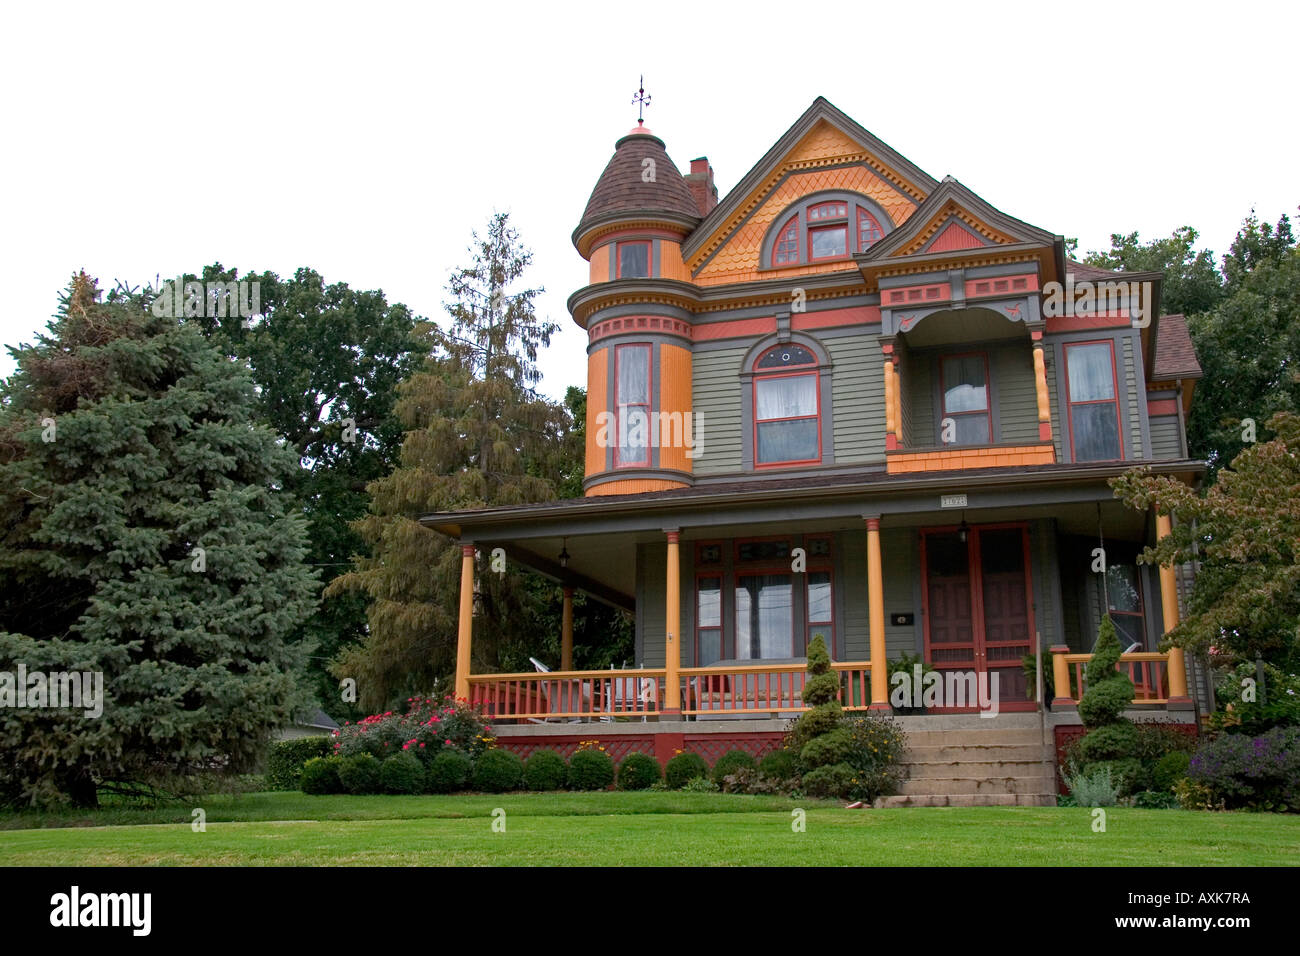 Victorian house at Independence Missouri - Stock Image